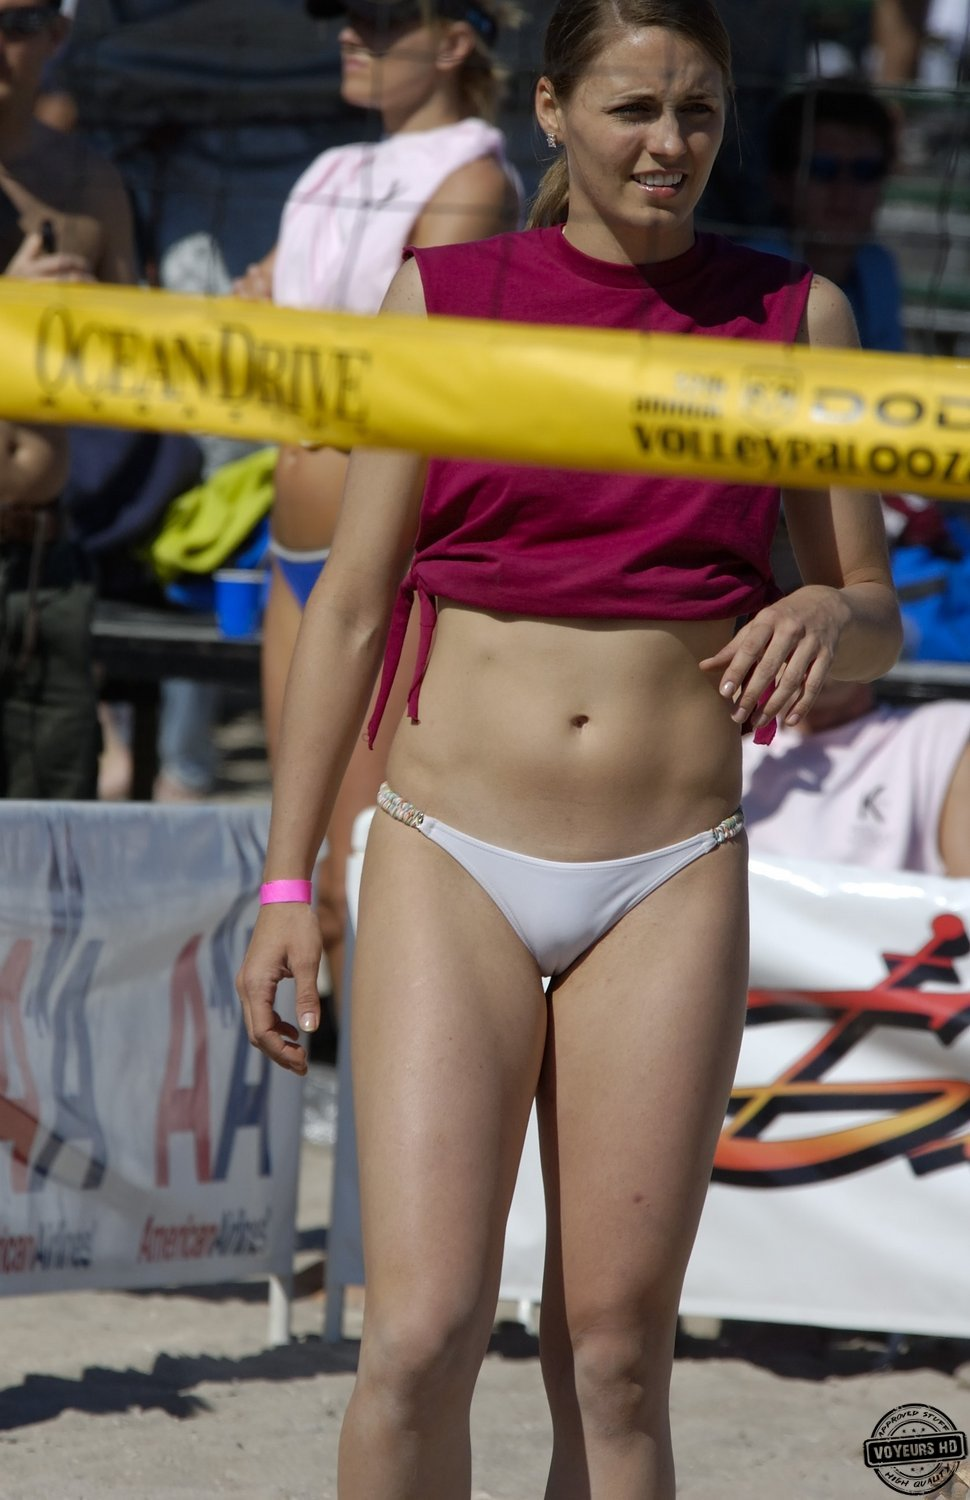 Hot hot amateur camel toe question You